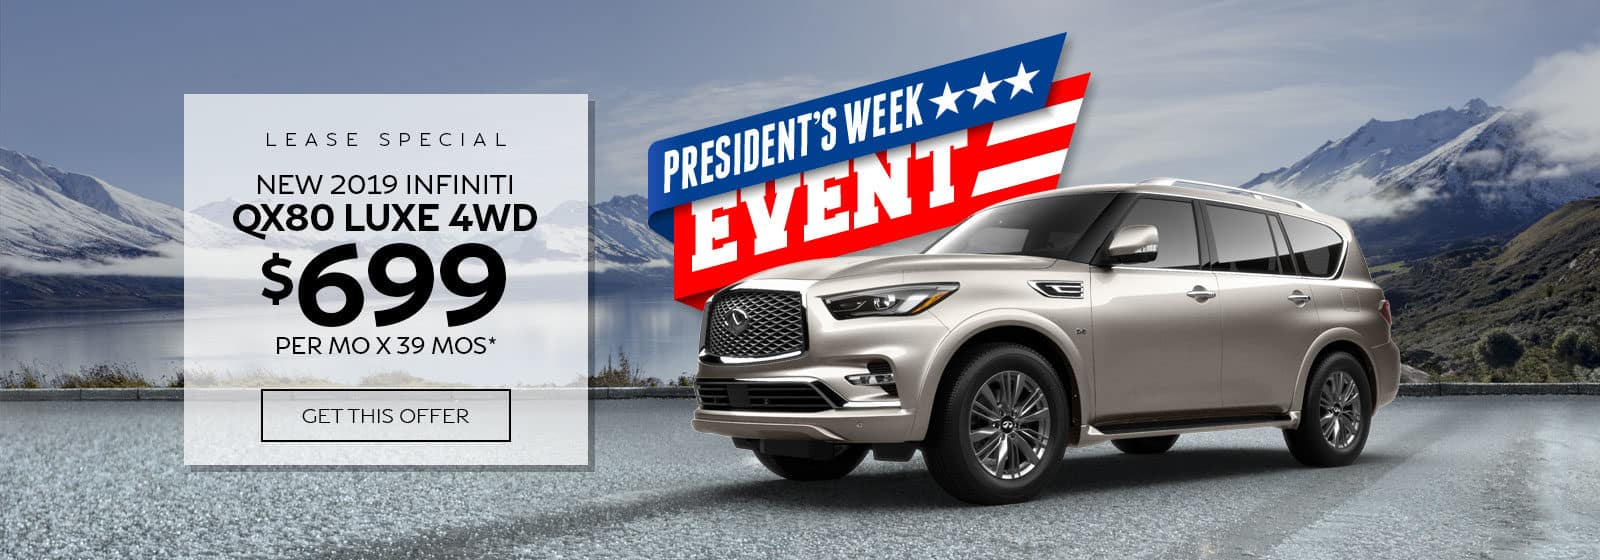 INFINITI QX80 lease special